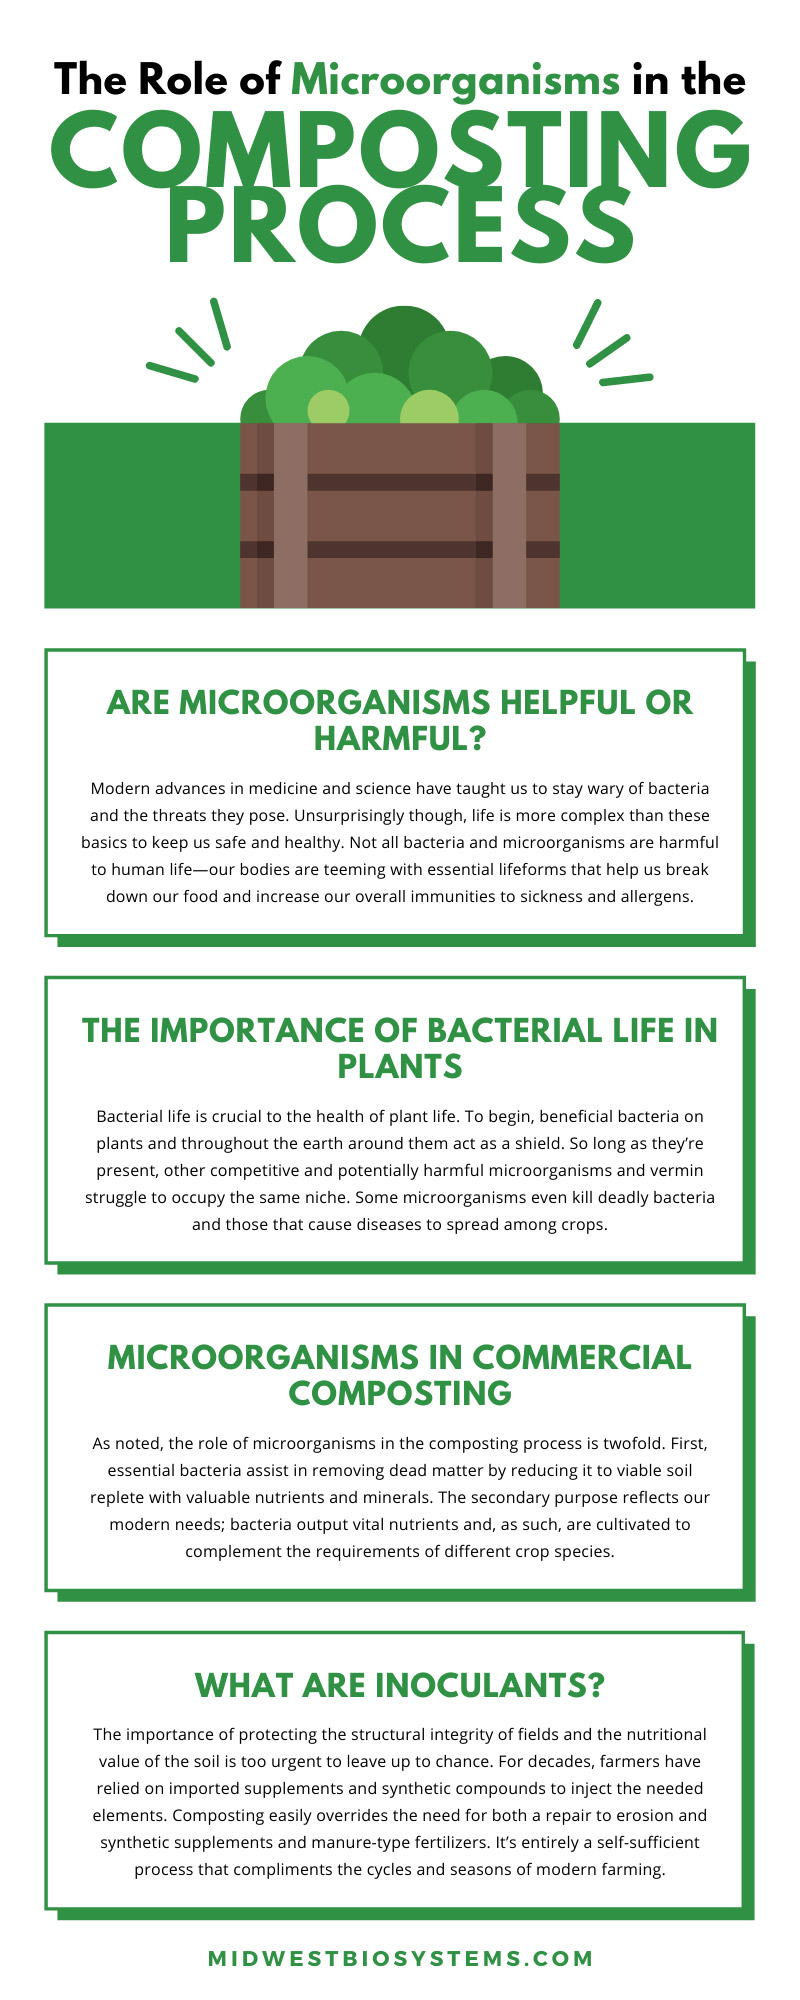 The Role of Microorganisms in the Composting Process